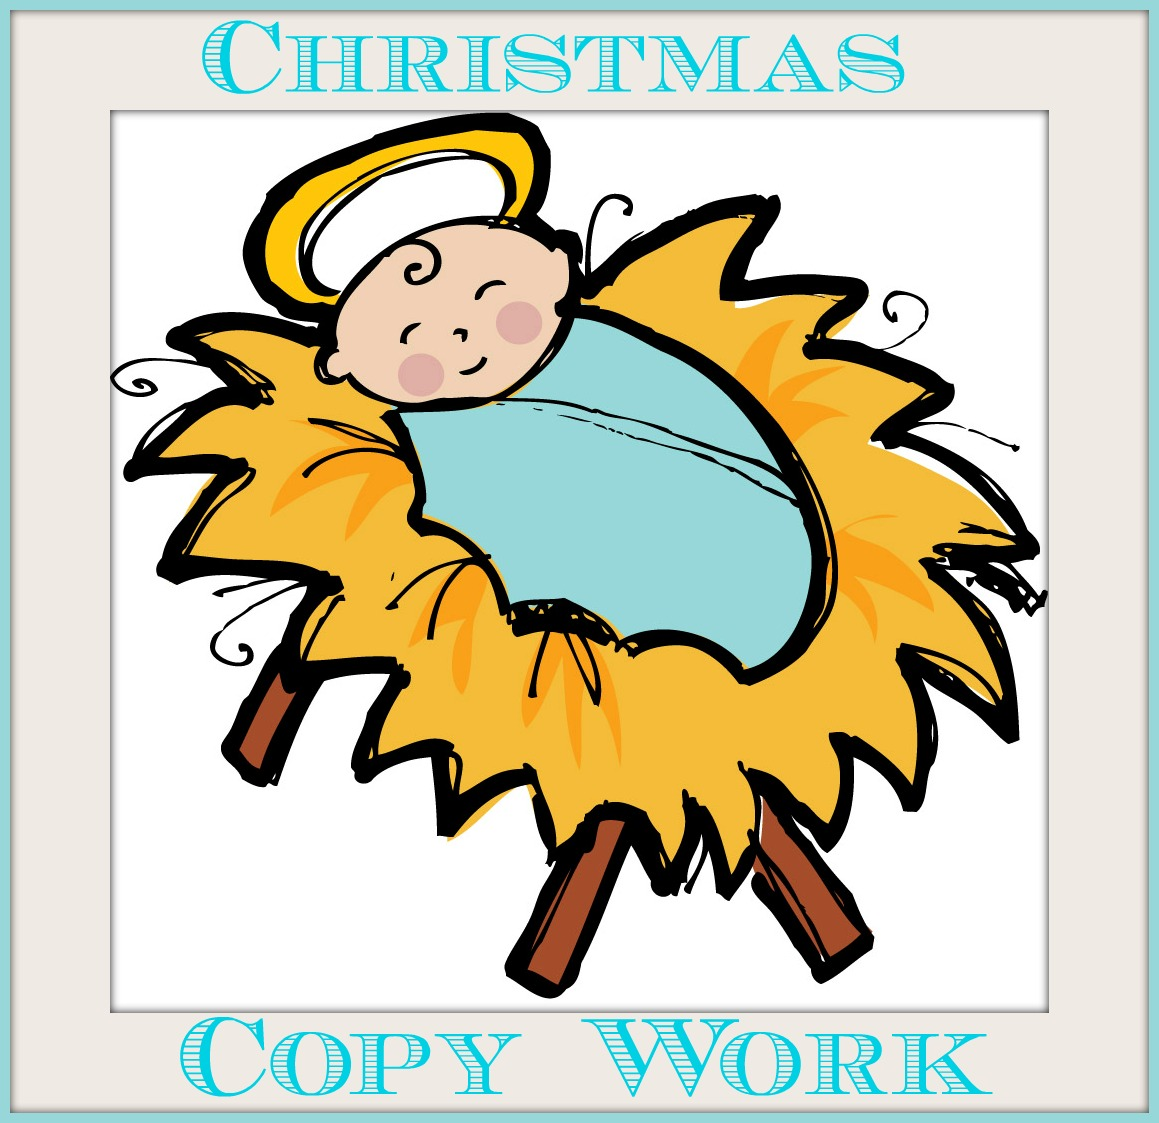 The Christmas Story Free Printable For Copywork Great For